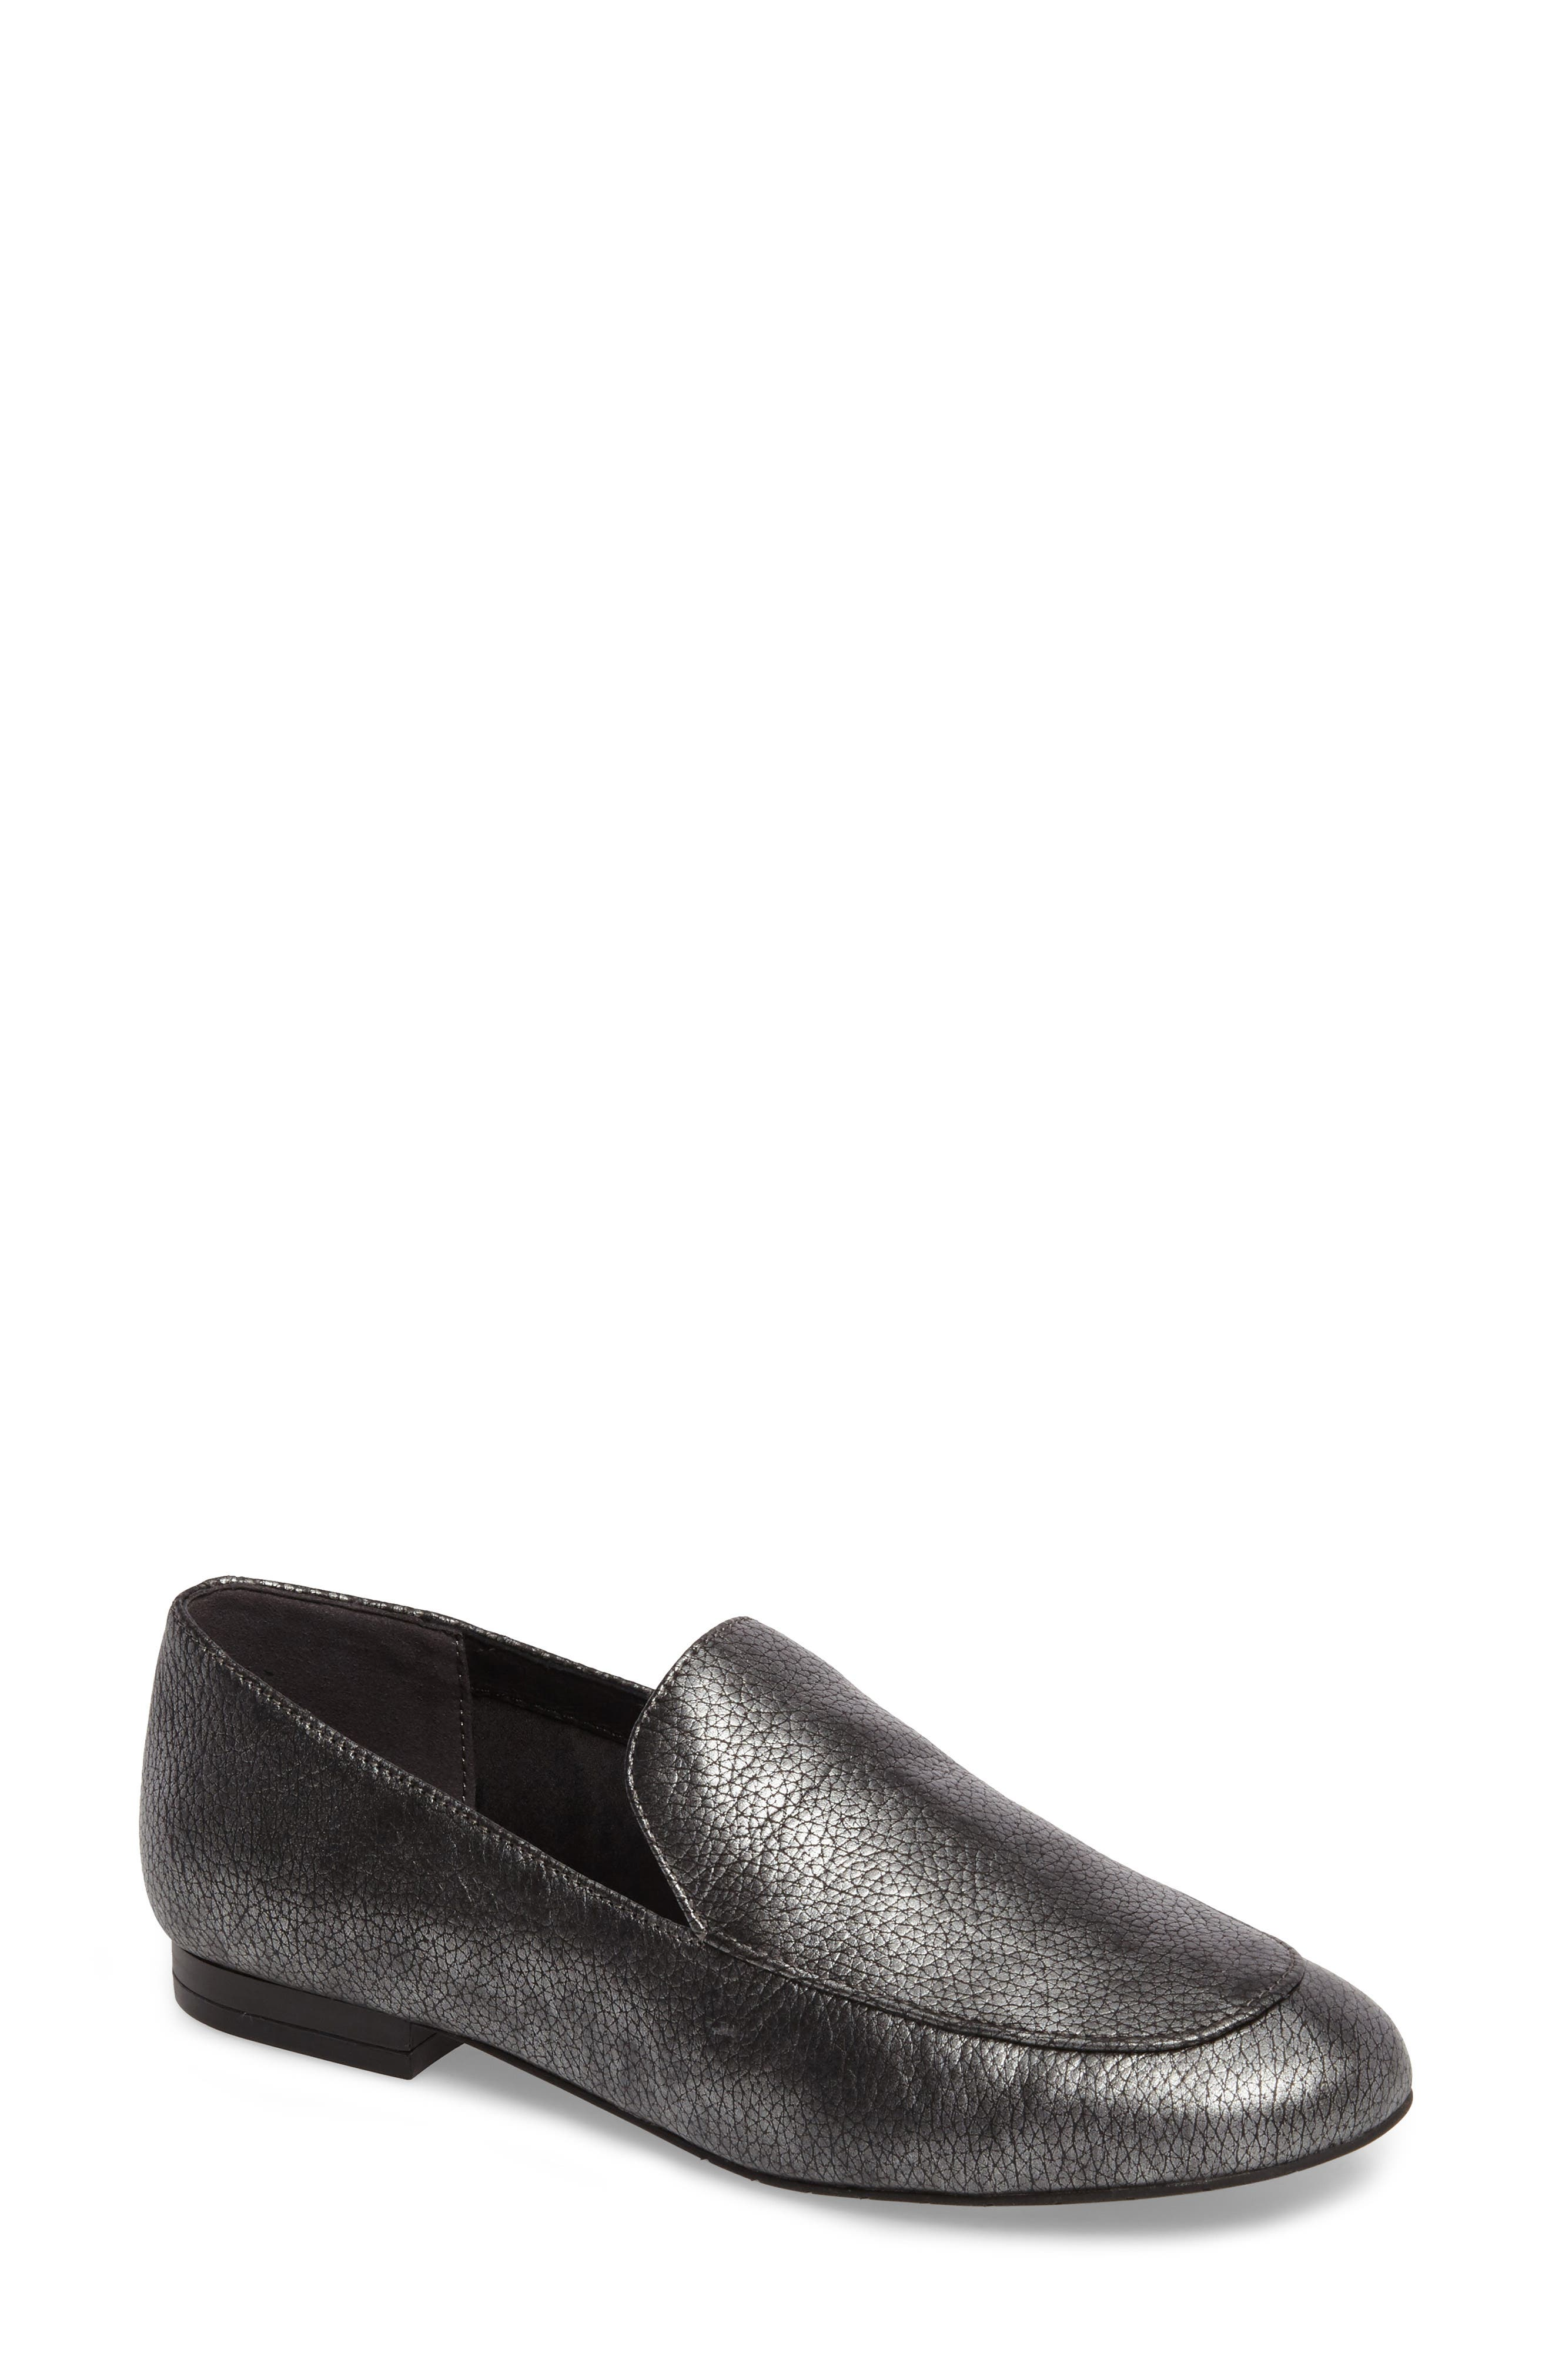 KENNETH COLE NEW YORK Westley Slip-On